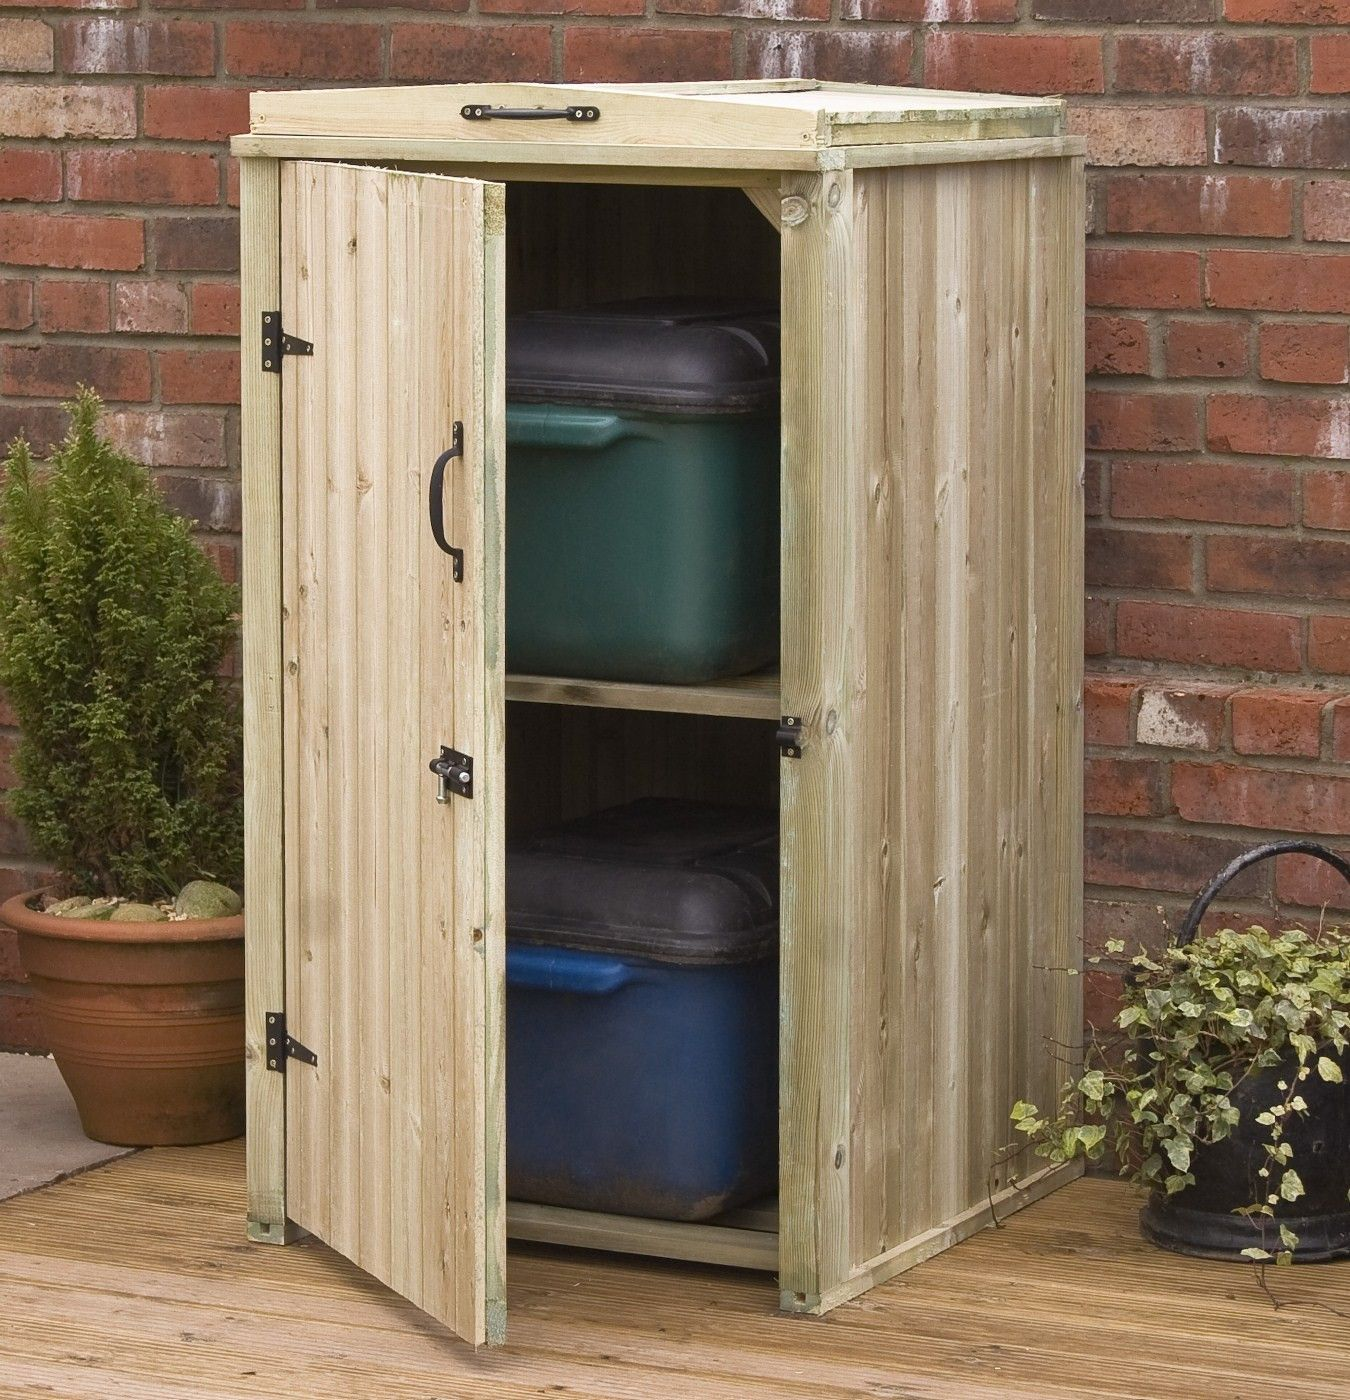 2019 Sears Outdoor Storage Cabinets Kitchen Cabinet Inserts Ideas Check More At Http